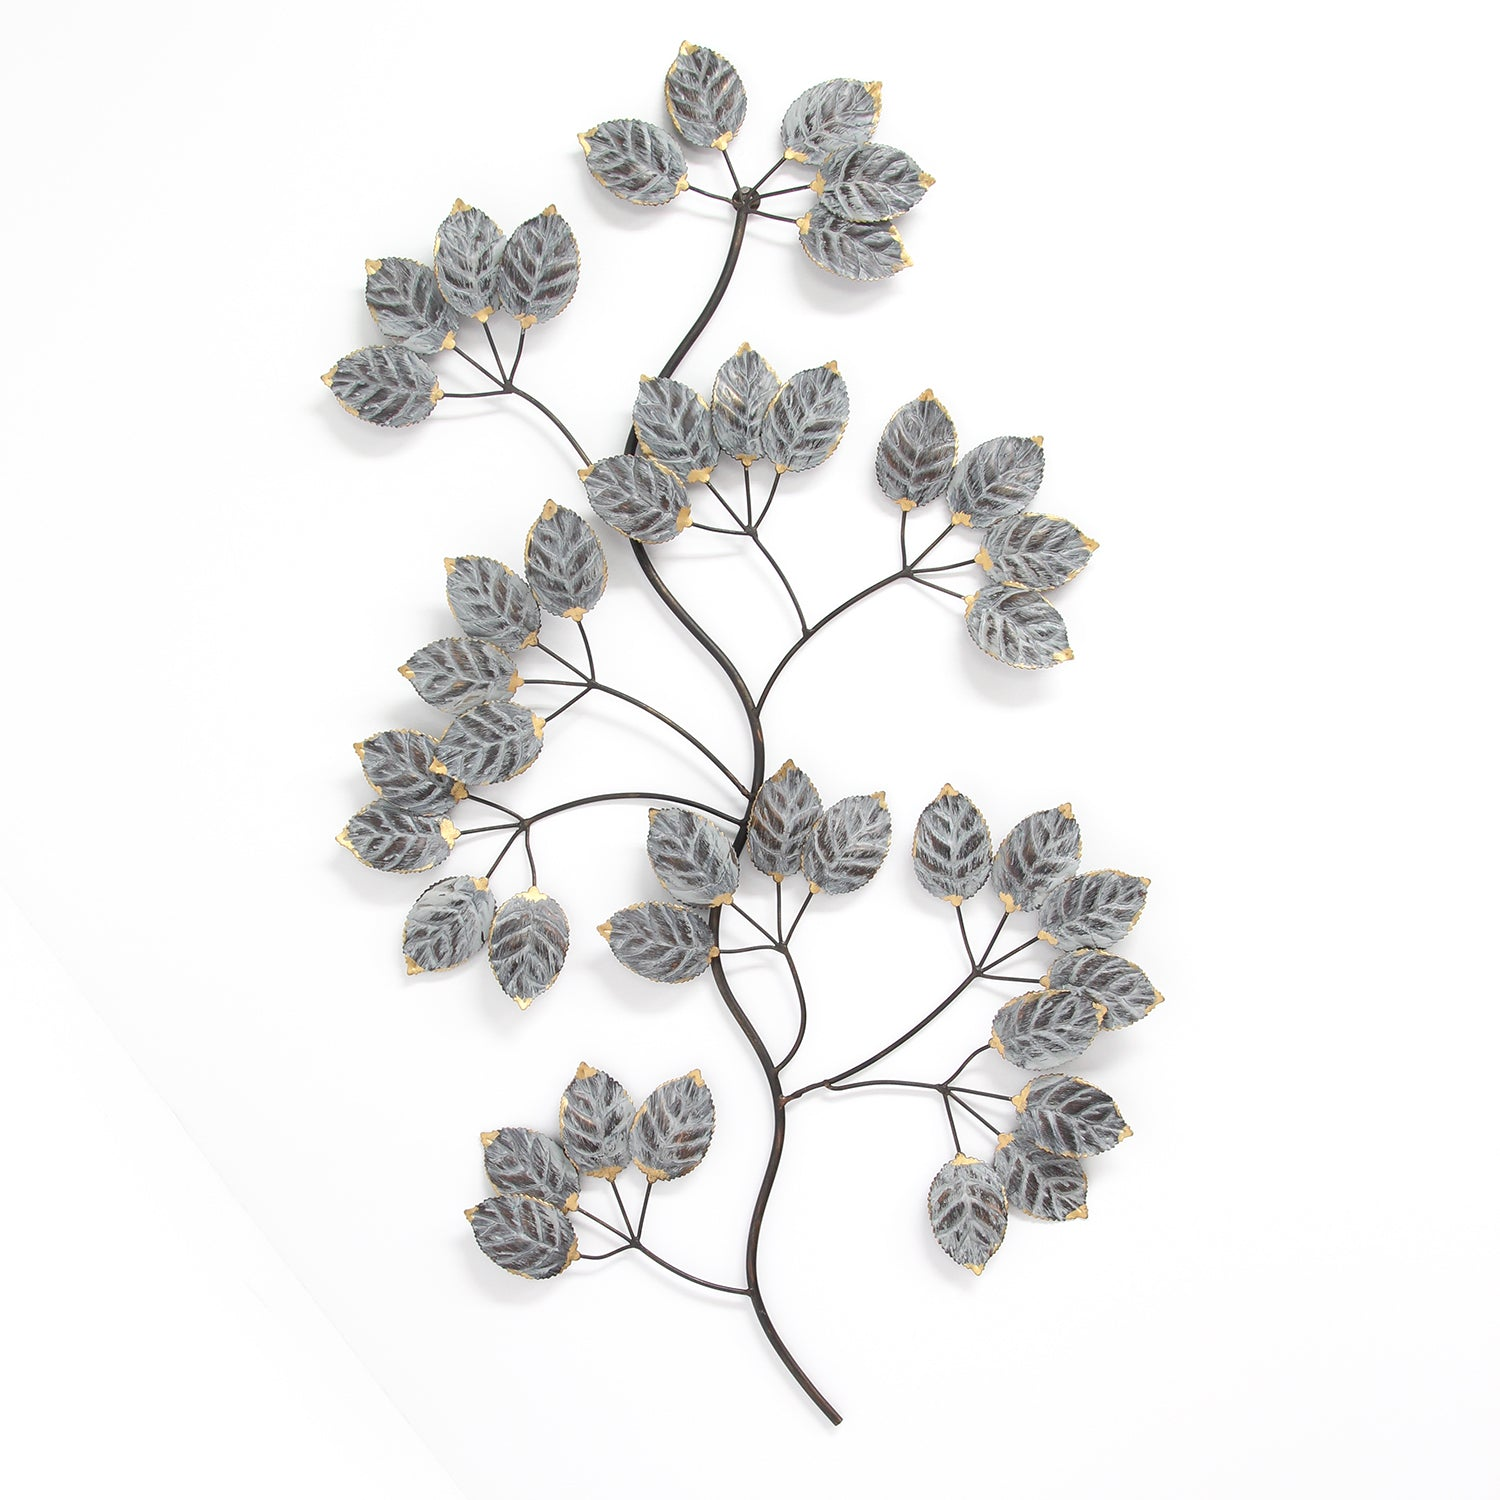 prod leaves wall metal hanging office sculpture details tree spin itm glow leaf decor home art branch